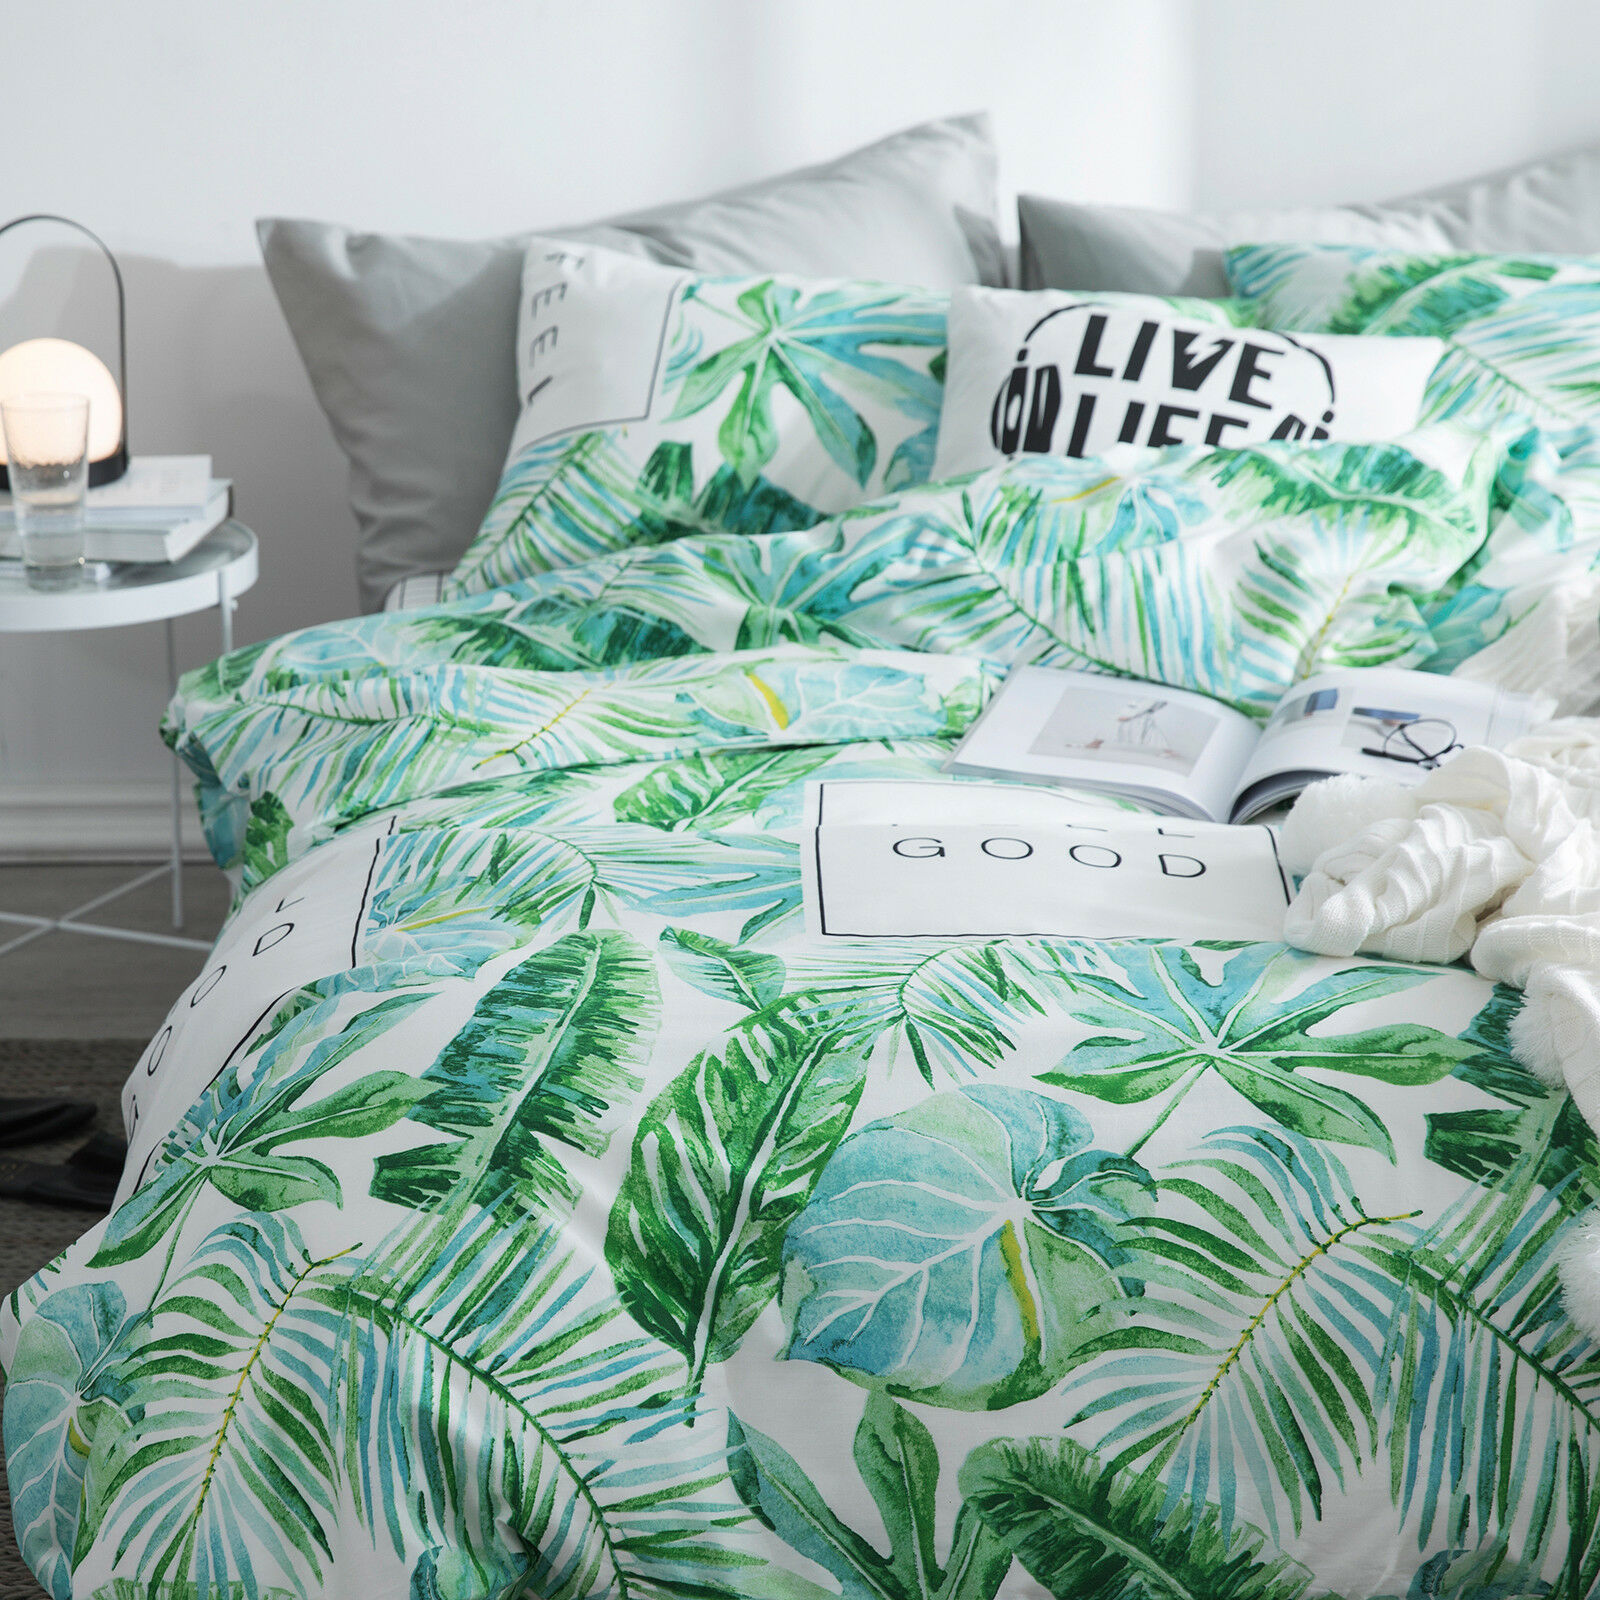 100 Cotton Tropical Palm Leaves Queen Duvet Cover Set Reversible New Ebay Check out our tropical leaf quilt selection for the very best in unique or custom, handmade pieces from our shops. details about 100 cotton tropical palm leaves queen duvet cover set reversible new